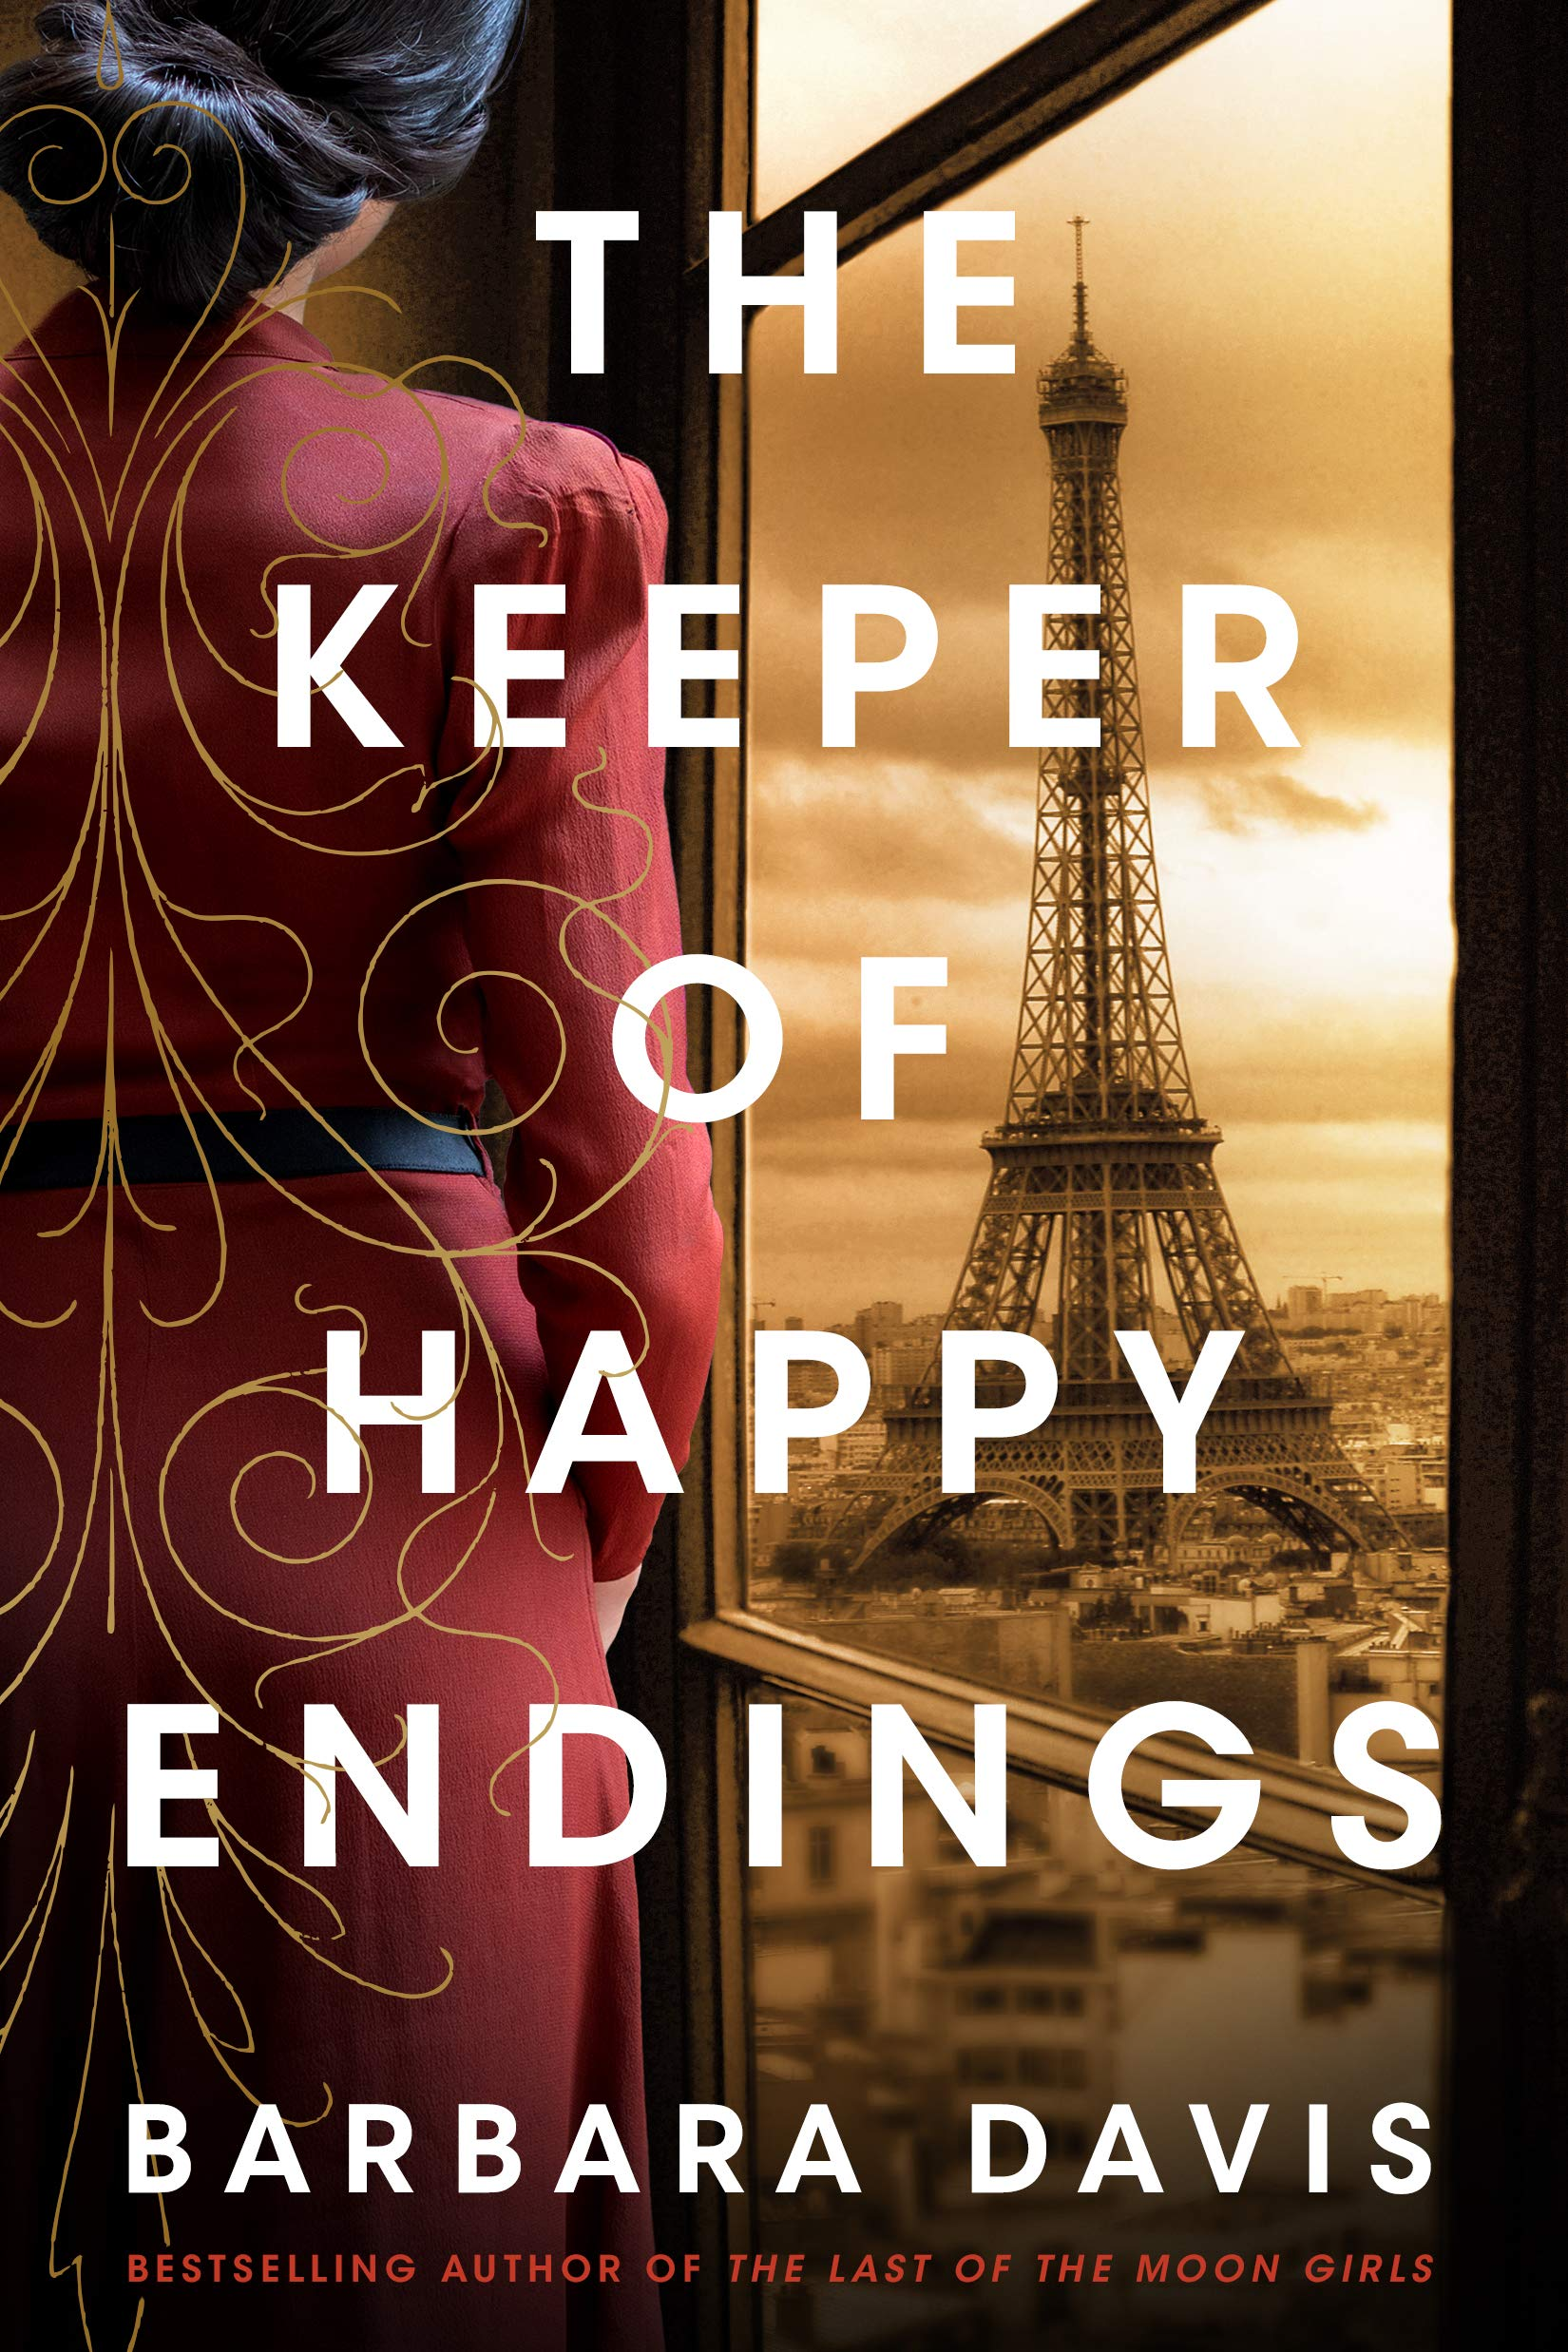 Cover image of The Keeper of Happy Endings by Barbara Davis